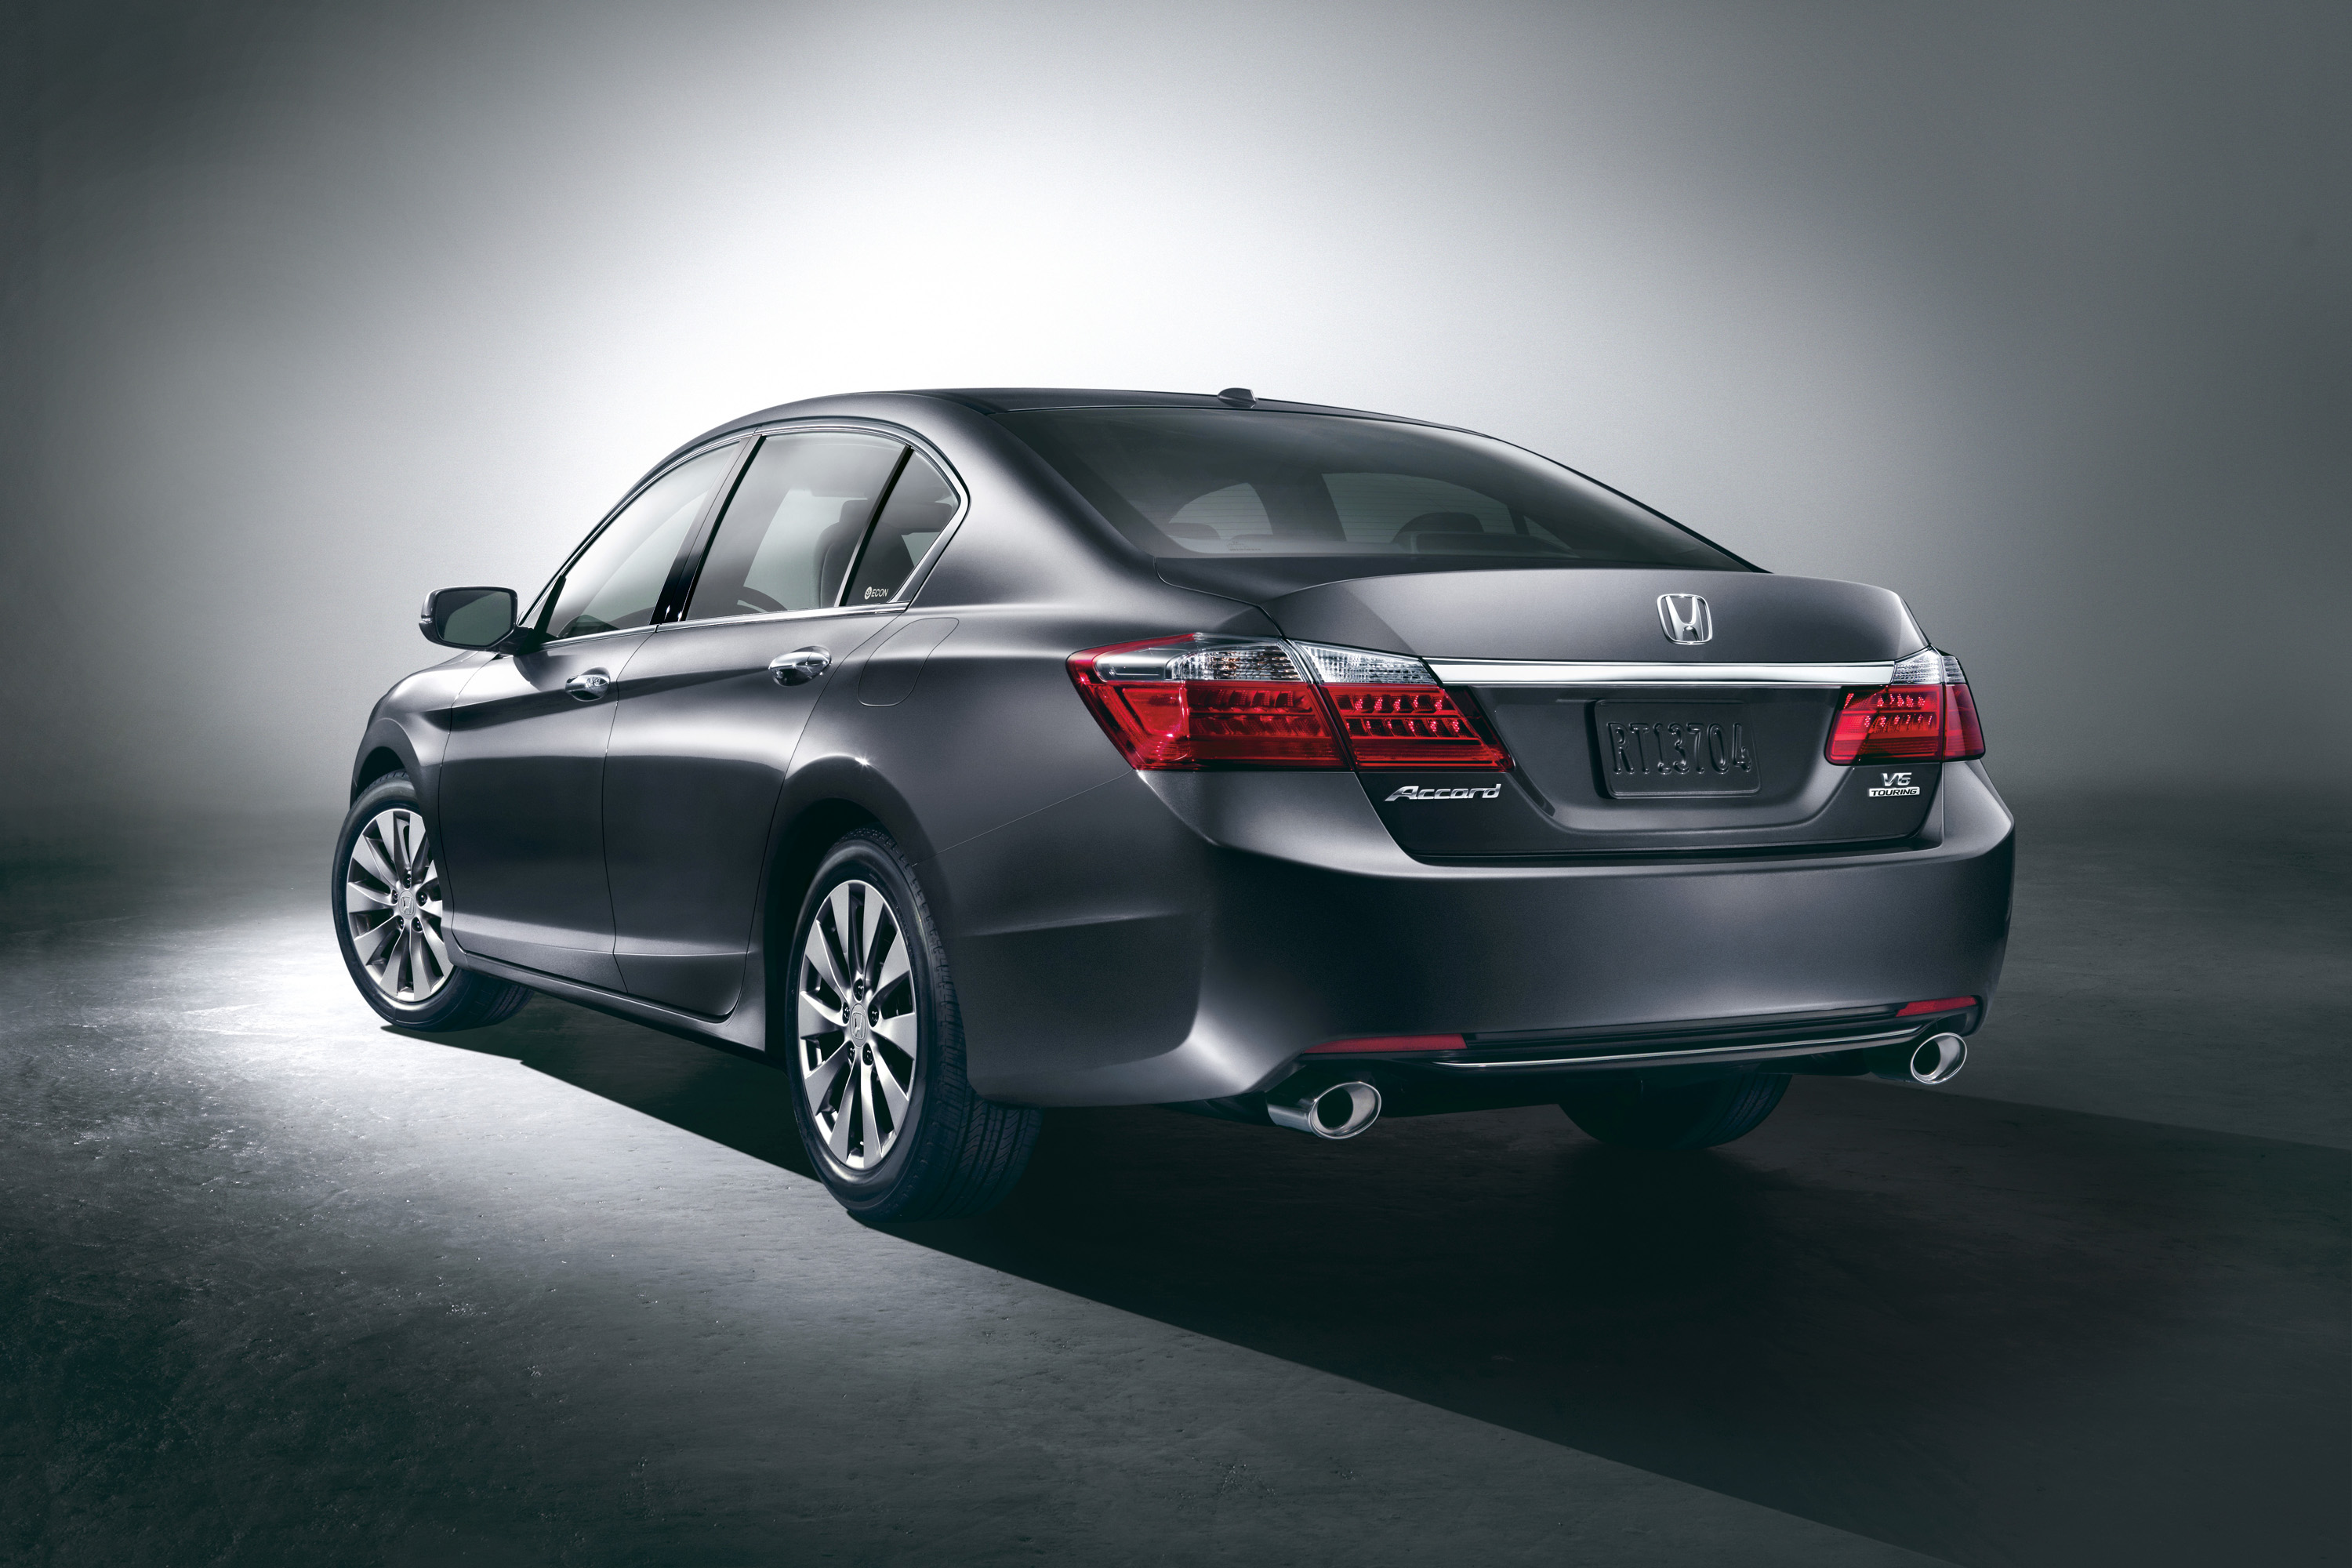 2013_Honda_Accord_Sedan_Touring_r34.jpg